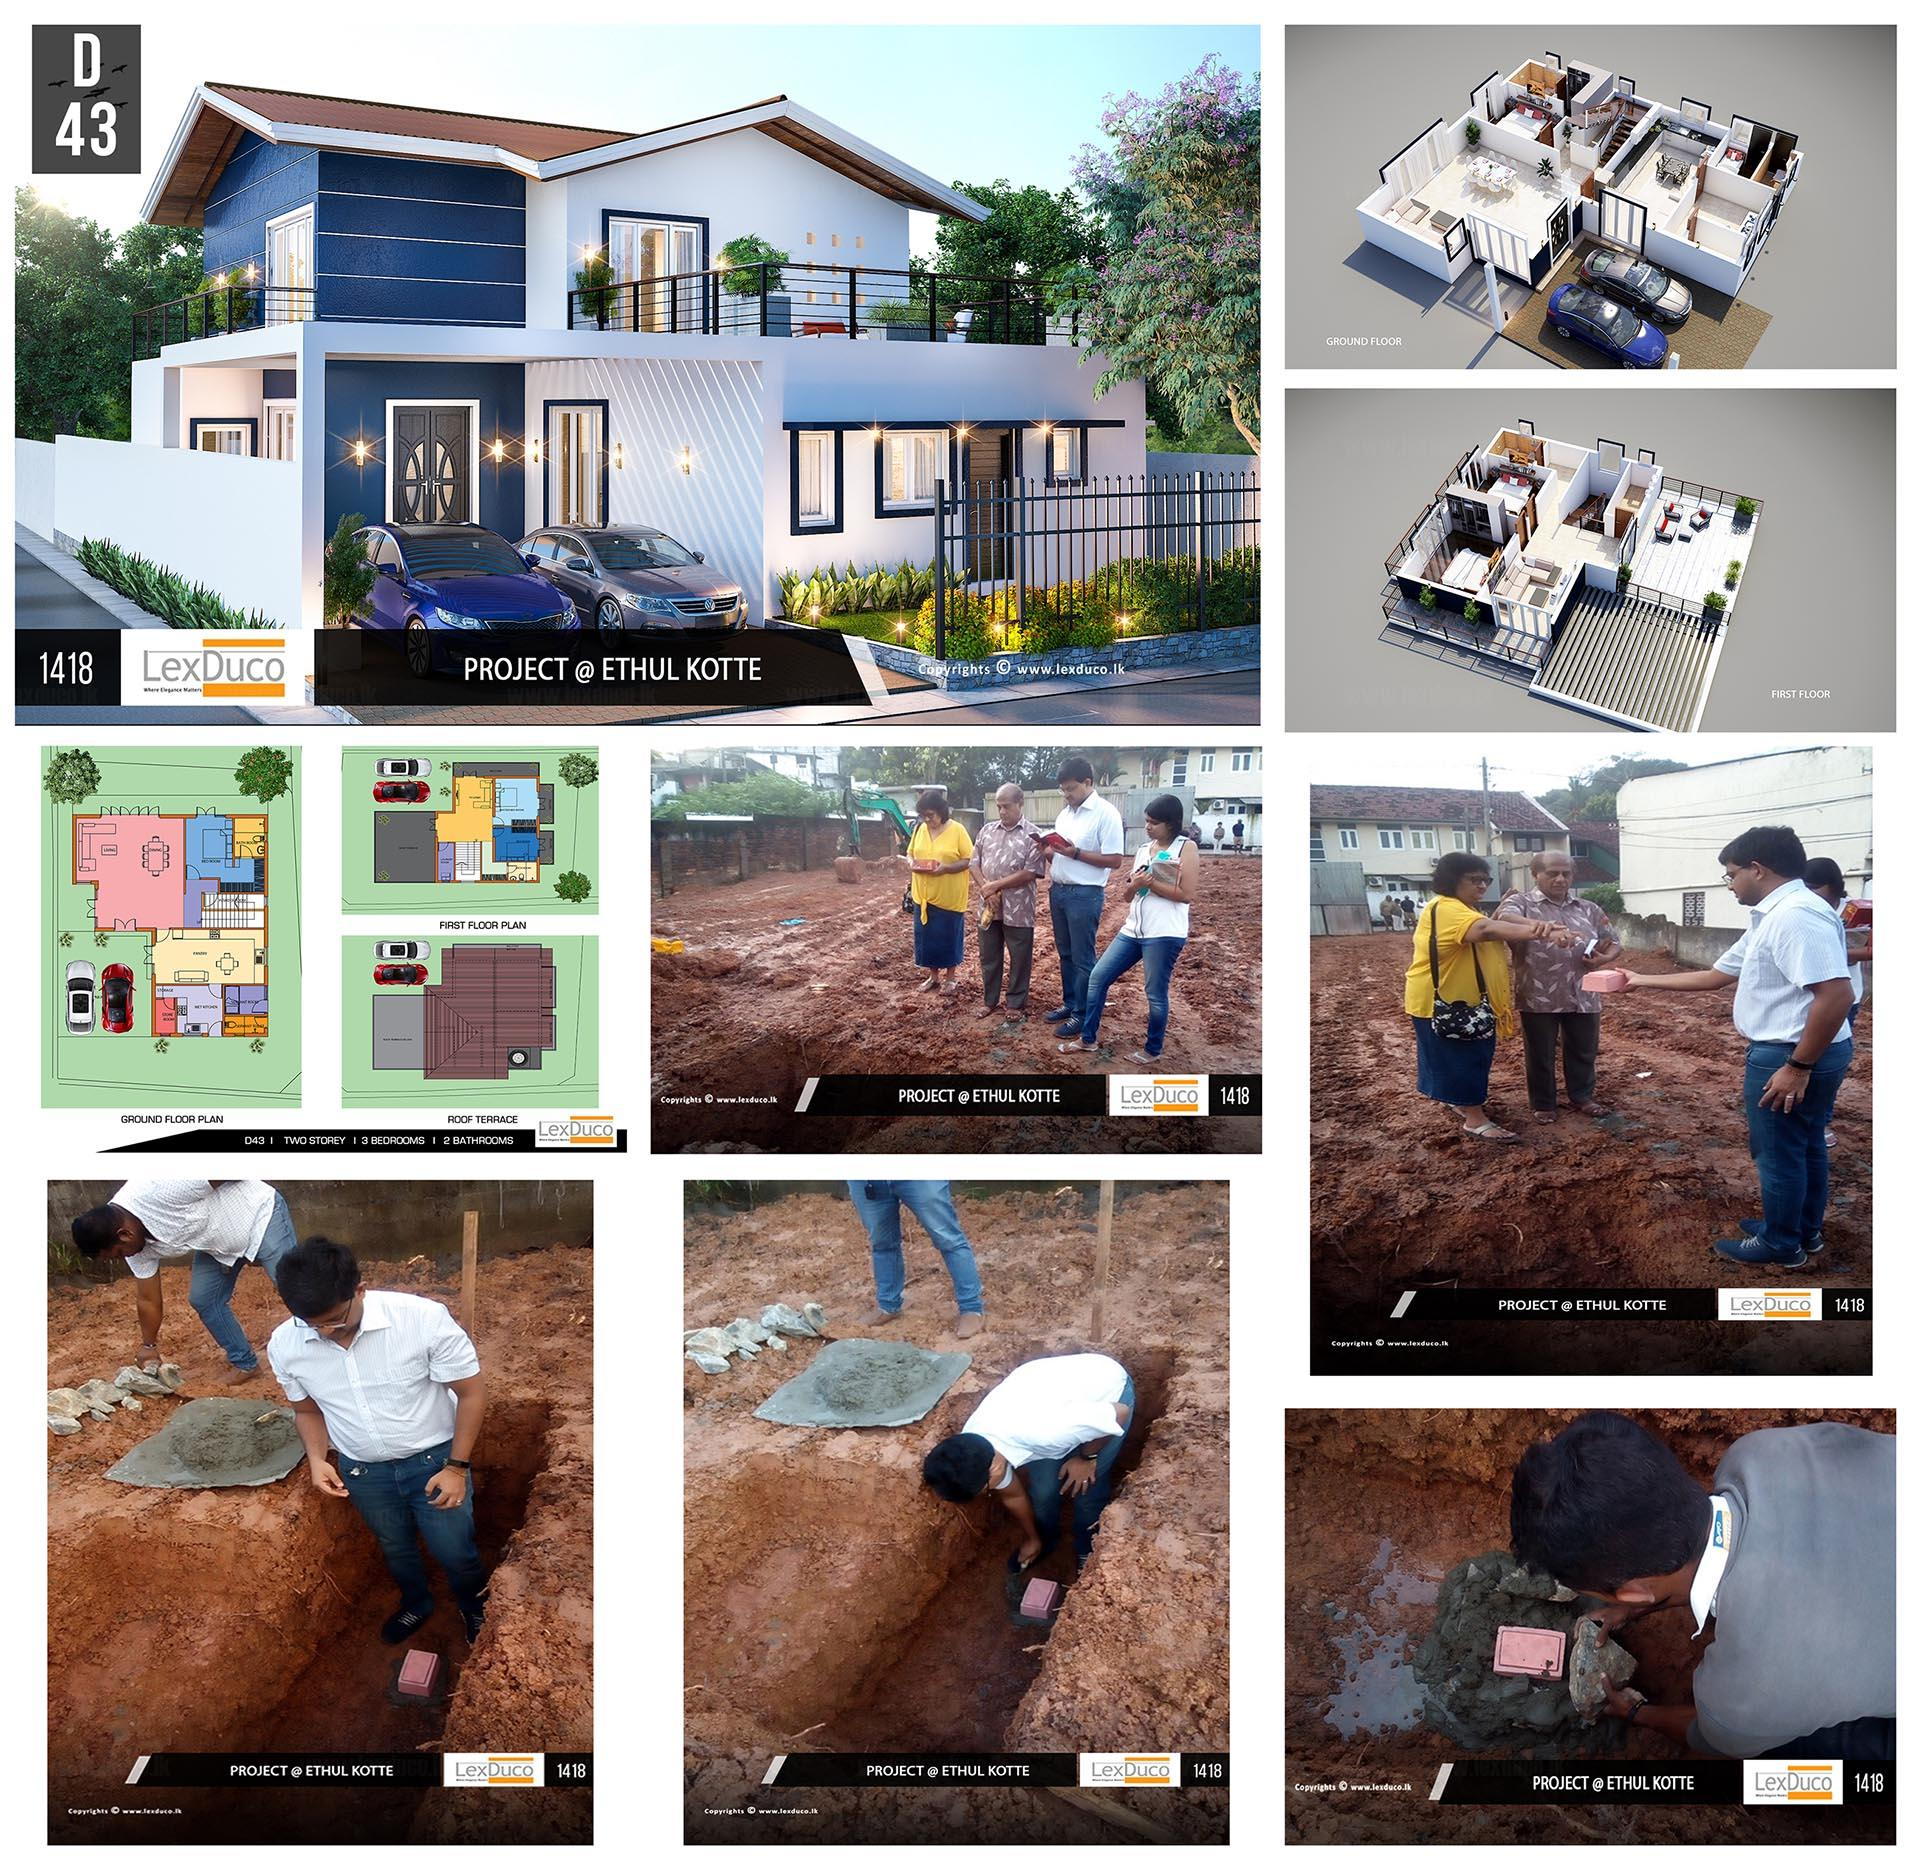 Residential Housing Project at Ethul Kotte | Lex Duco